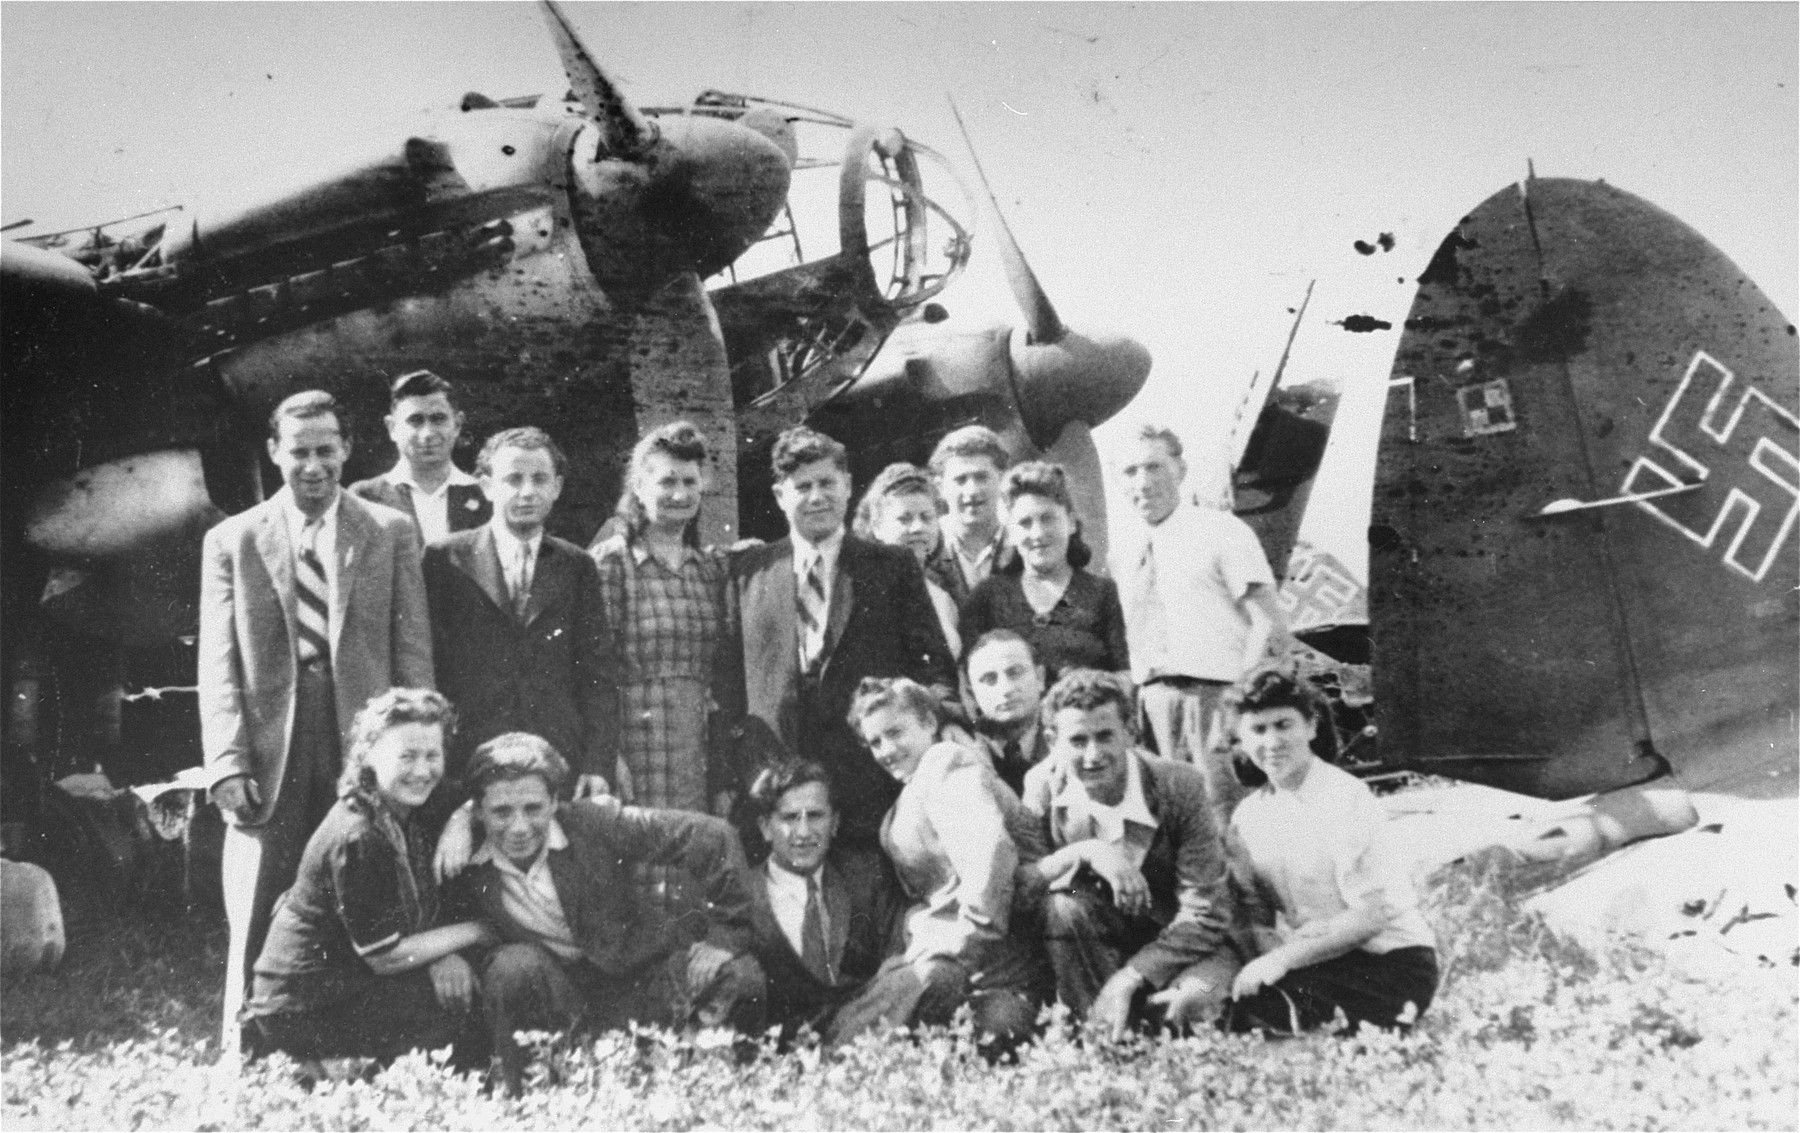 Group portrait of young Jewish DPs in front of a Nazi plane at an airport near Foehrenwald.  Among those pictured is David Bajer (first row, third from the left).